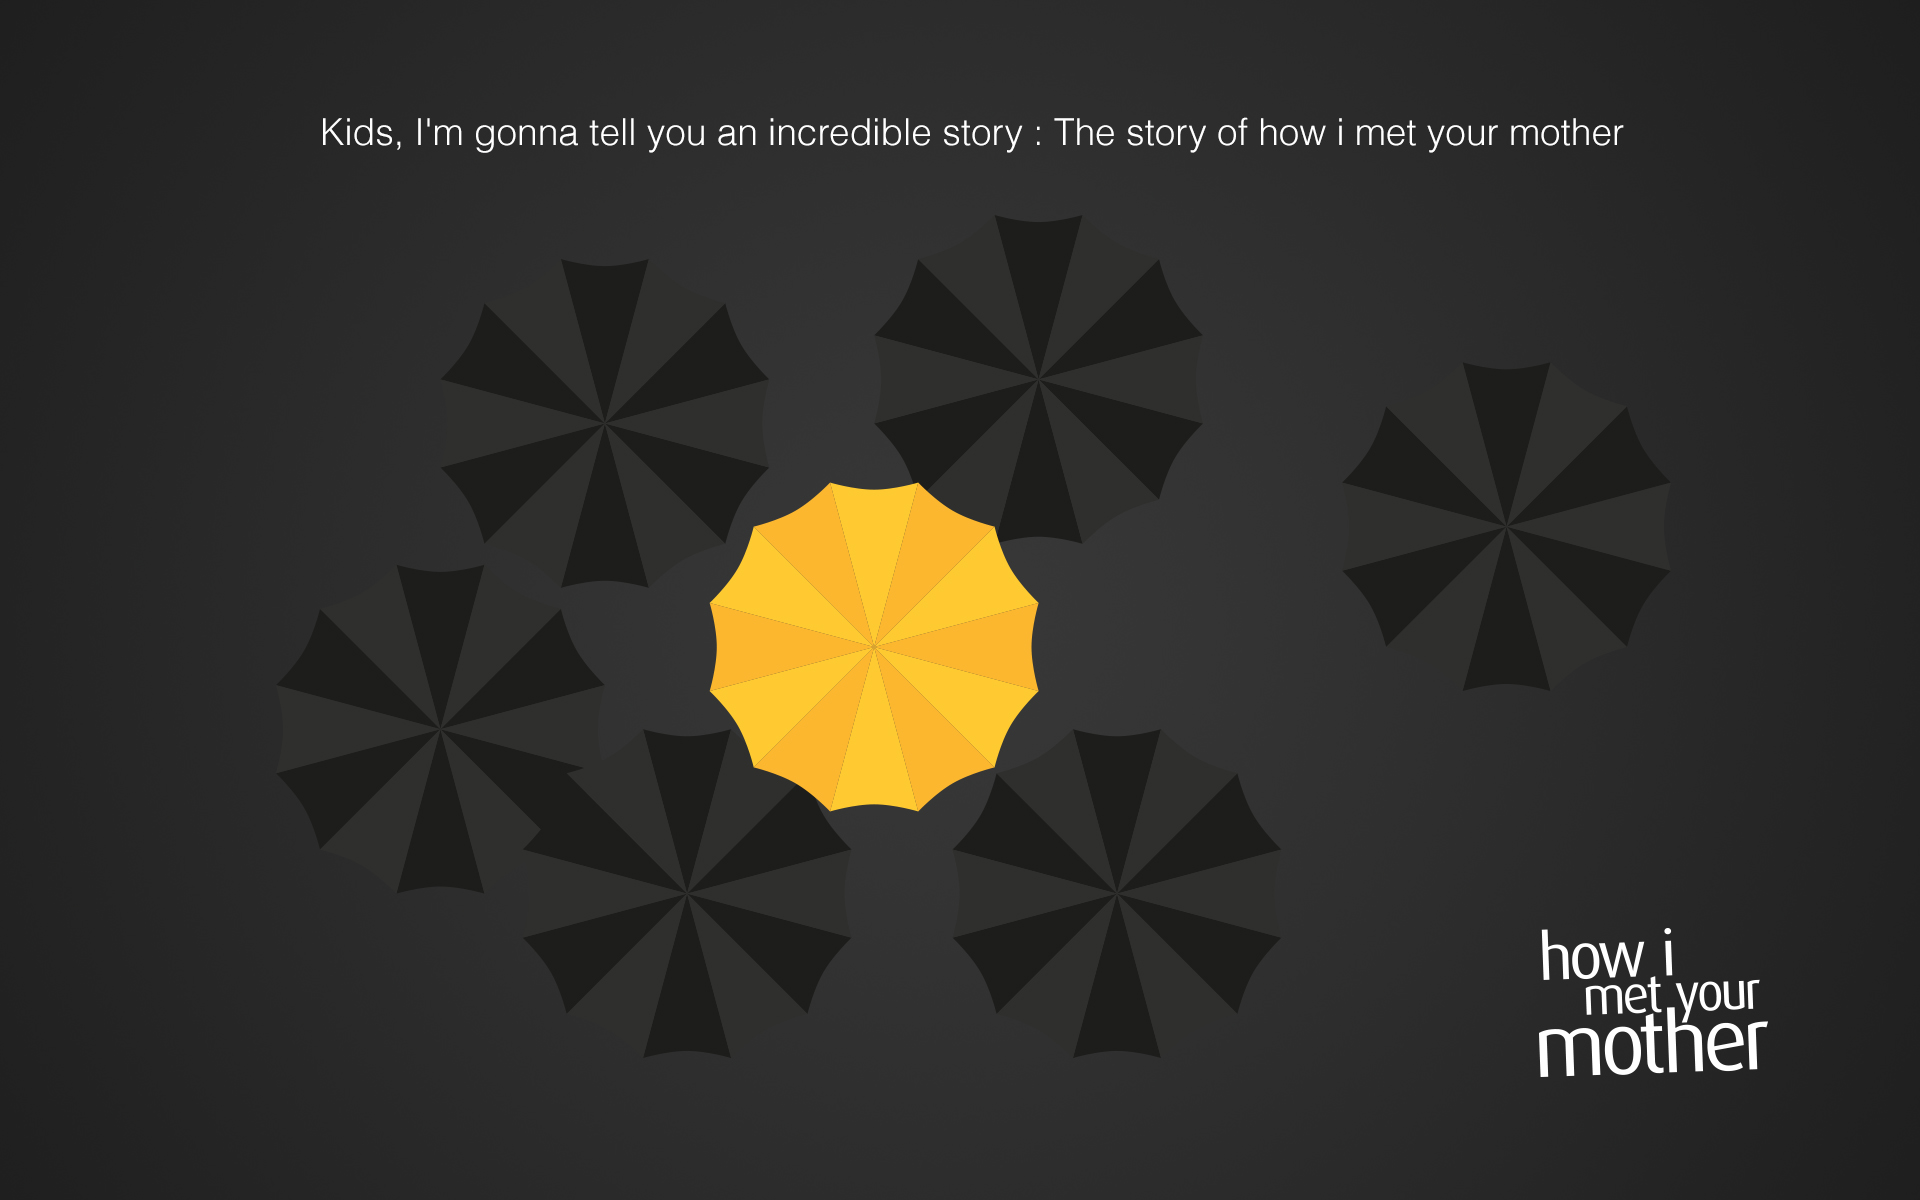 Himym Quotes Wallpaper How I Met Your Mother Full Hd Wallpaper And Background